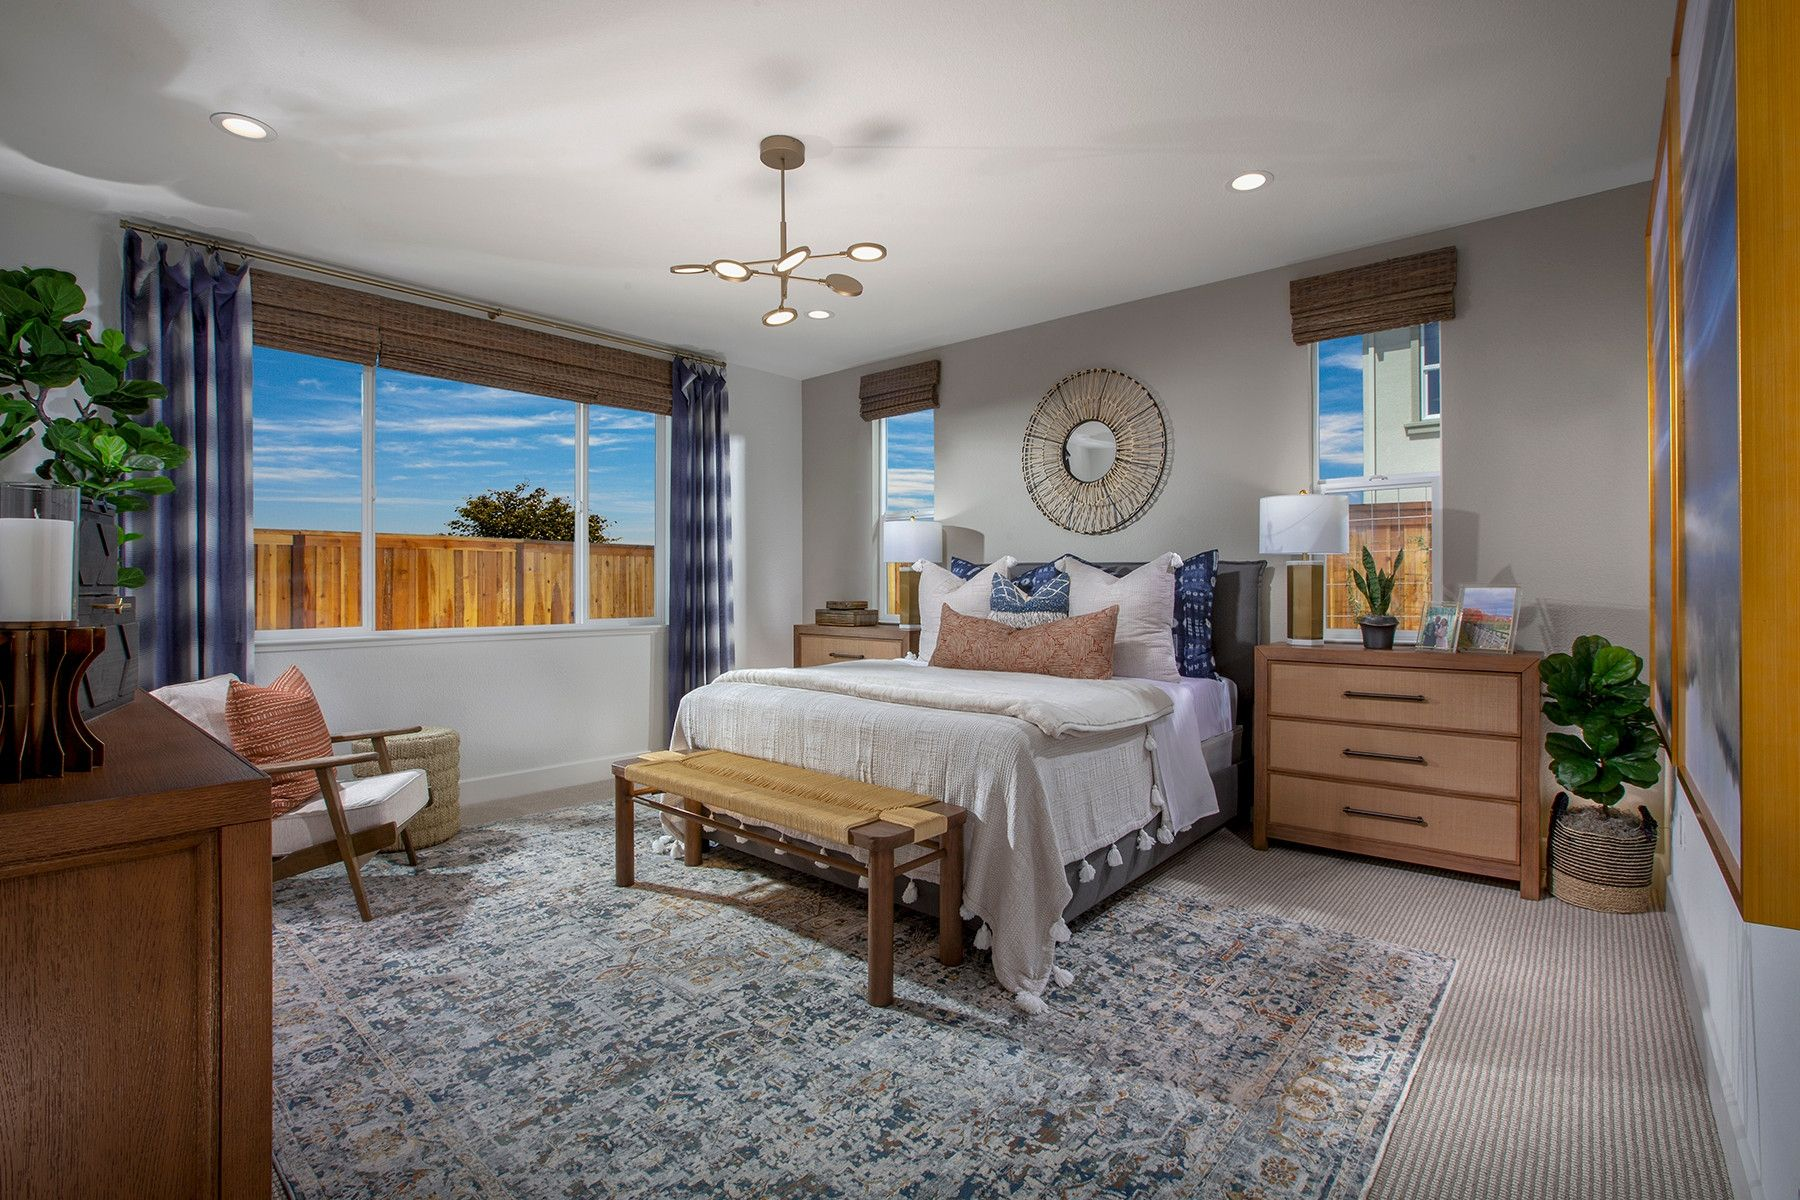 Bedroom featured in the Plan 1 By Shea Homes in Stockton-Lodi, CA